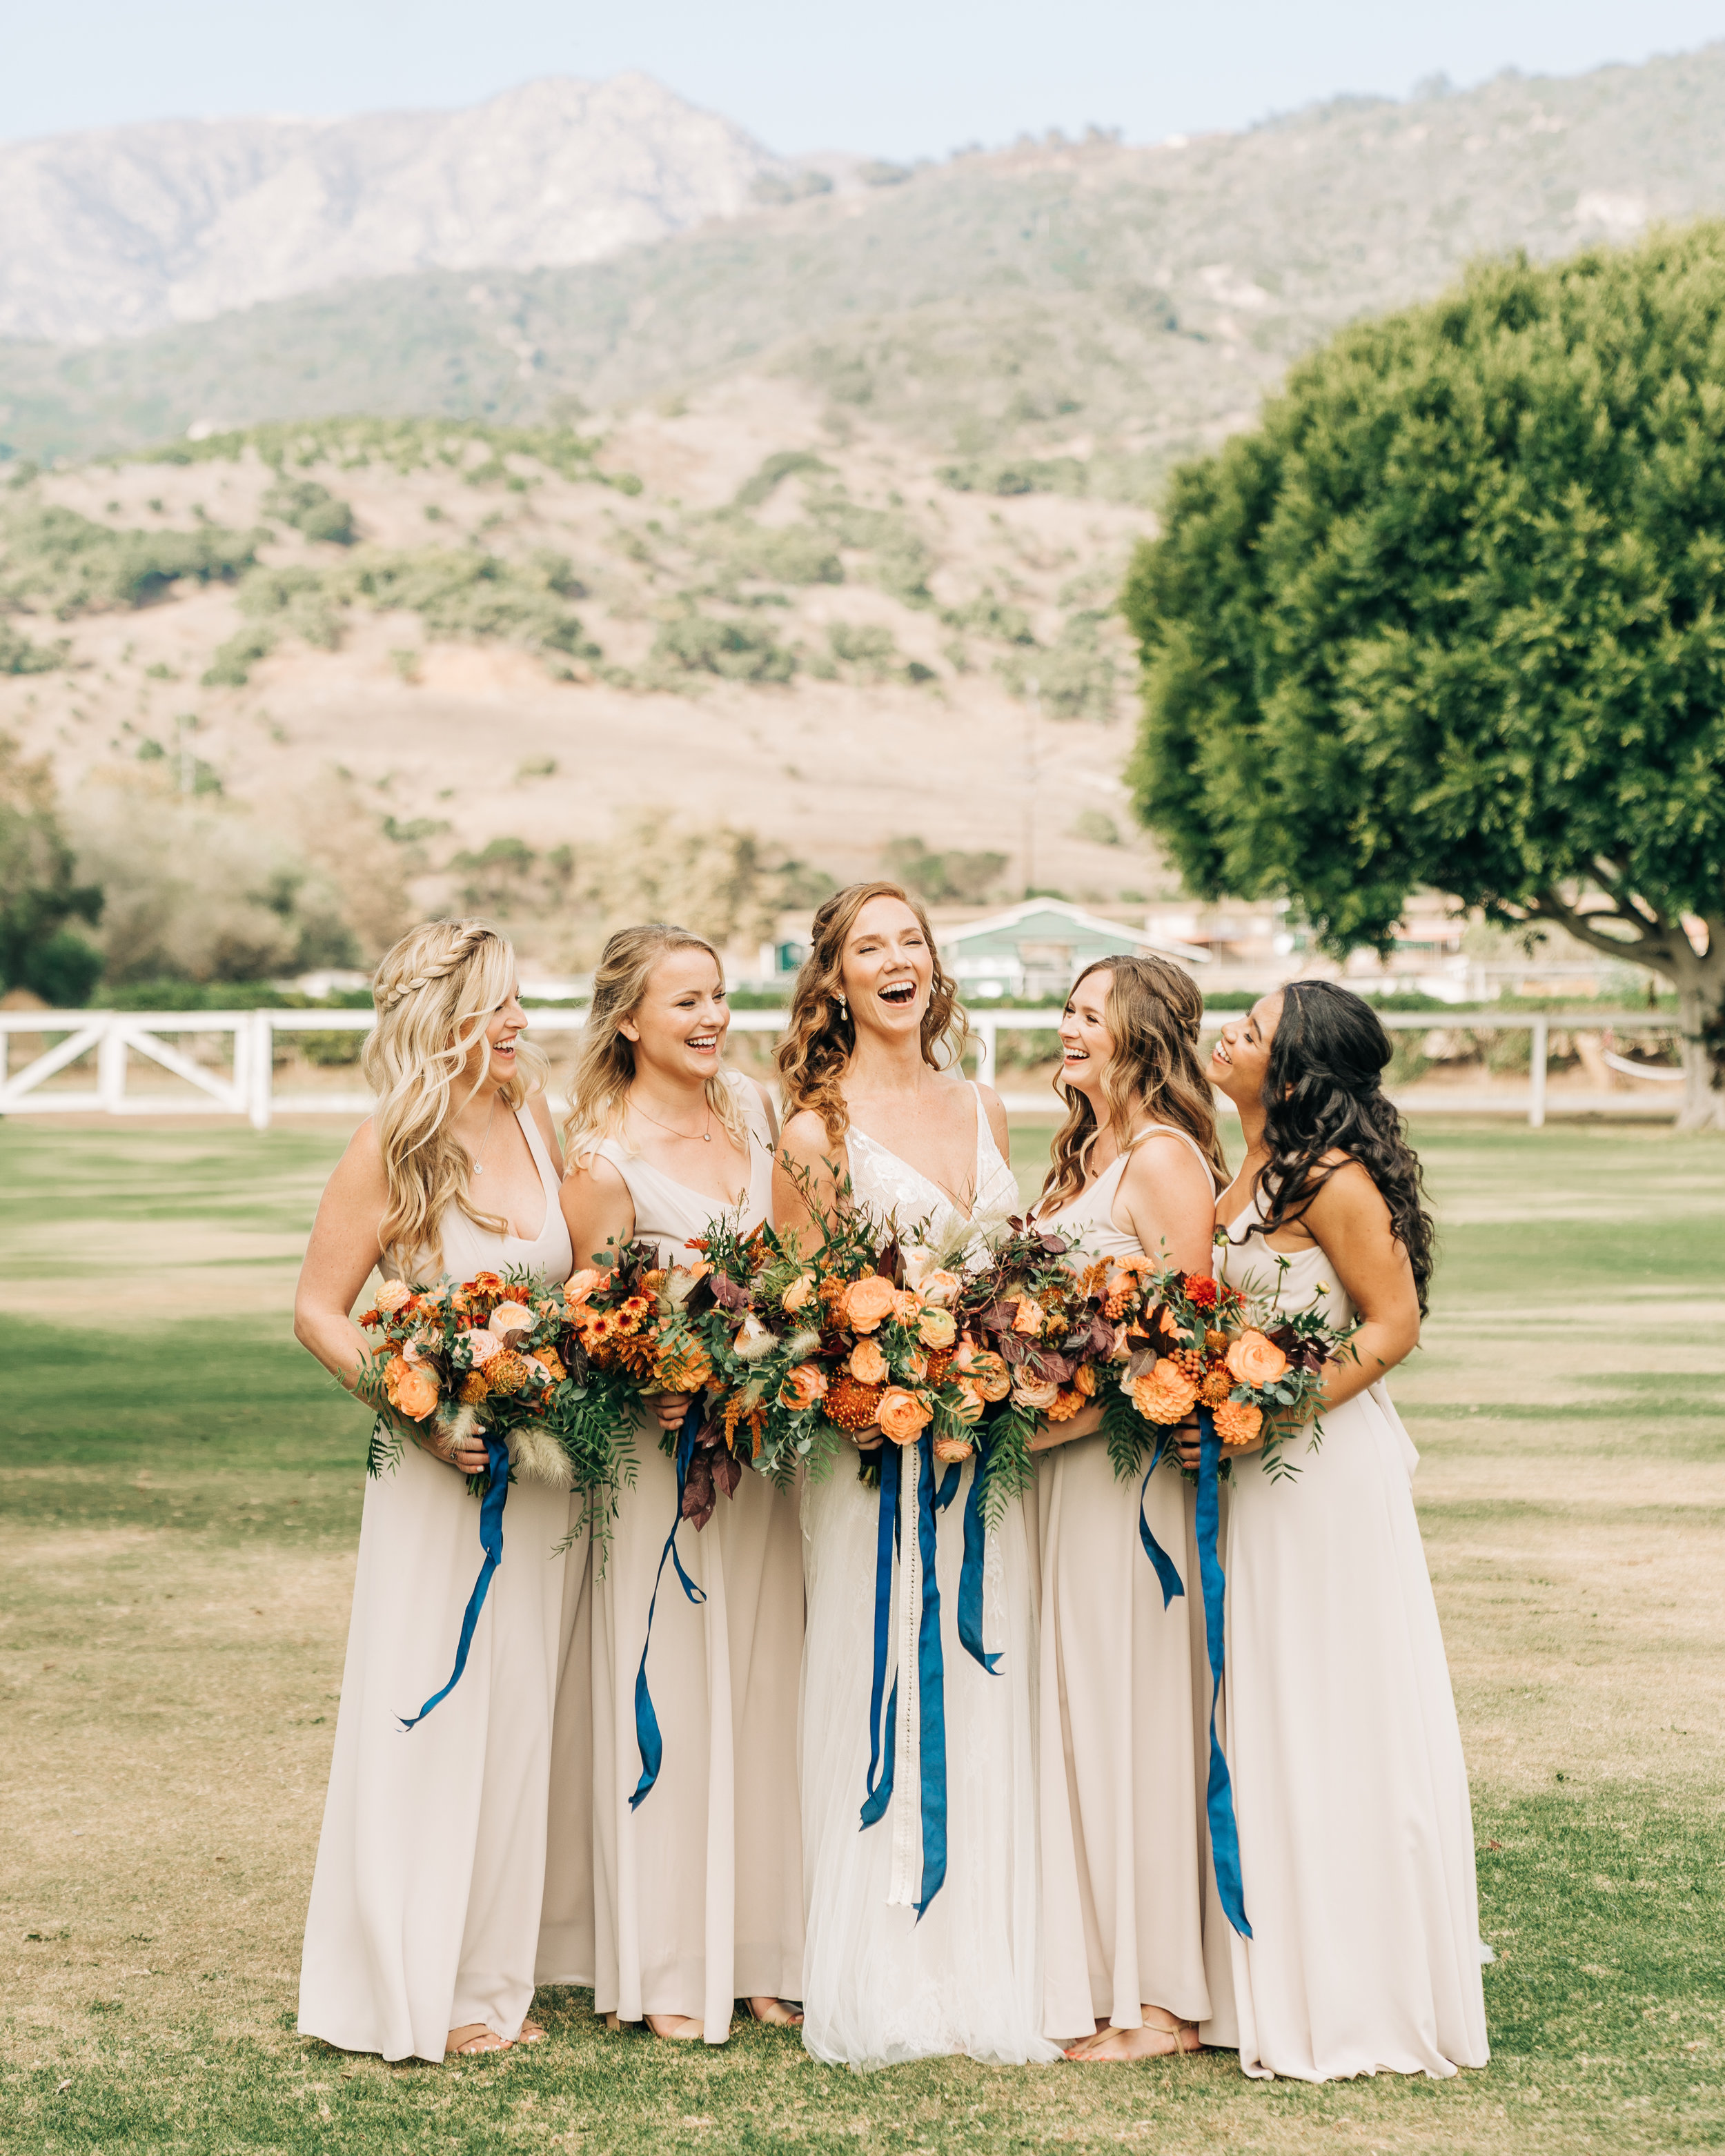 www.santabarbarawedding.com | Brandon Bibbins Photography | The Cottages at Polo Run | Christina Welch Floral | Bride Laughs with Bridesmaids